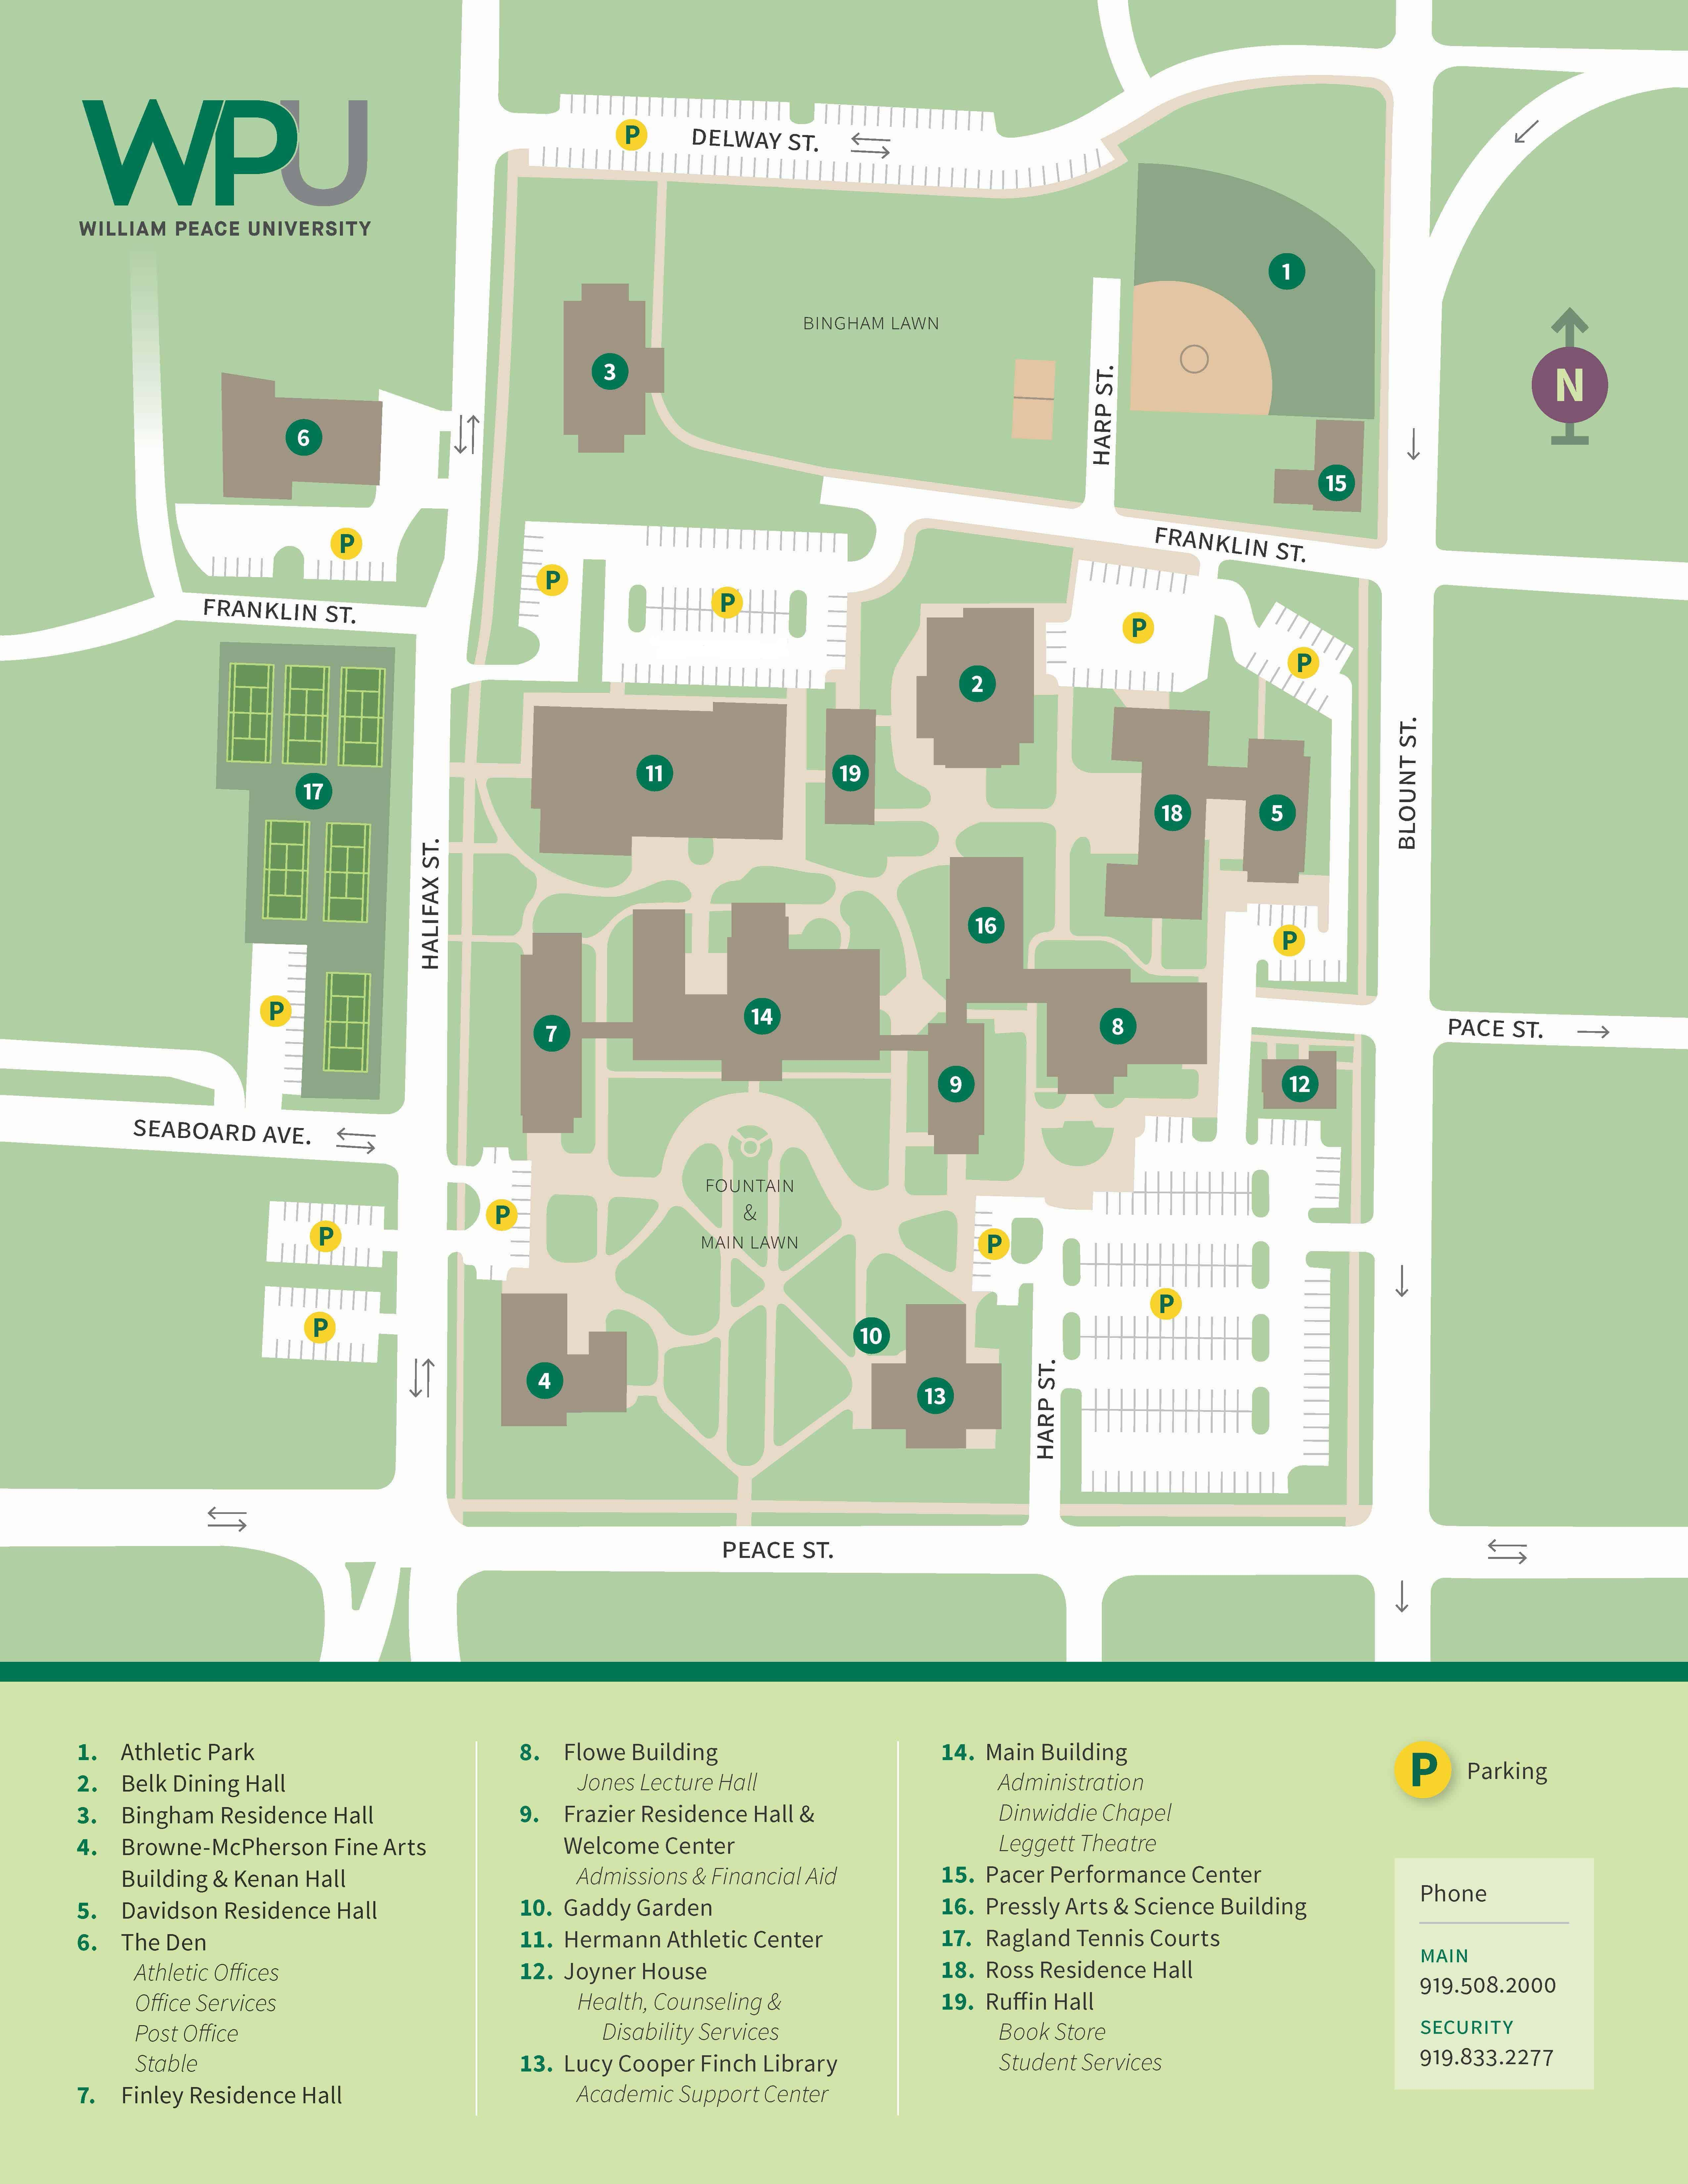 locations directions william peace university